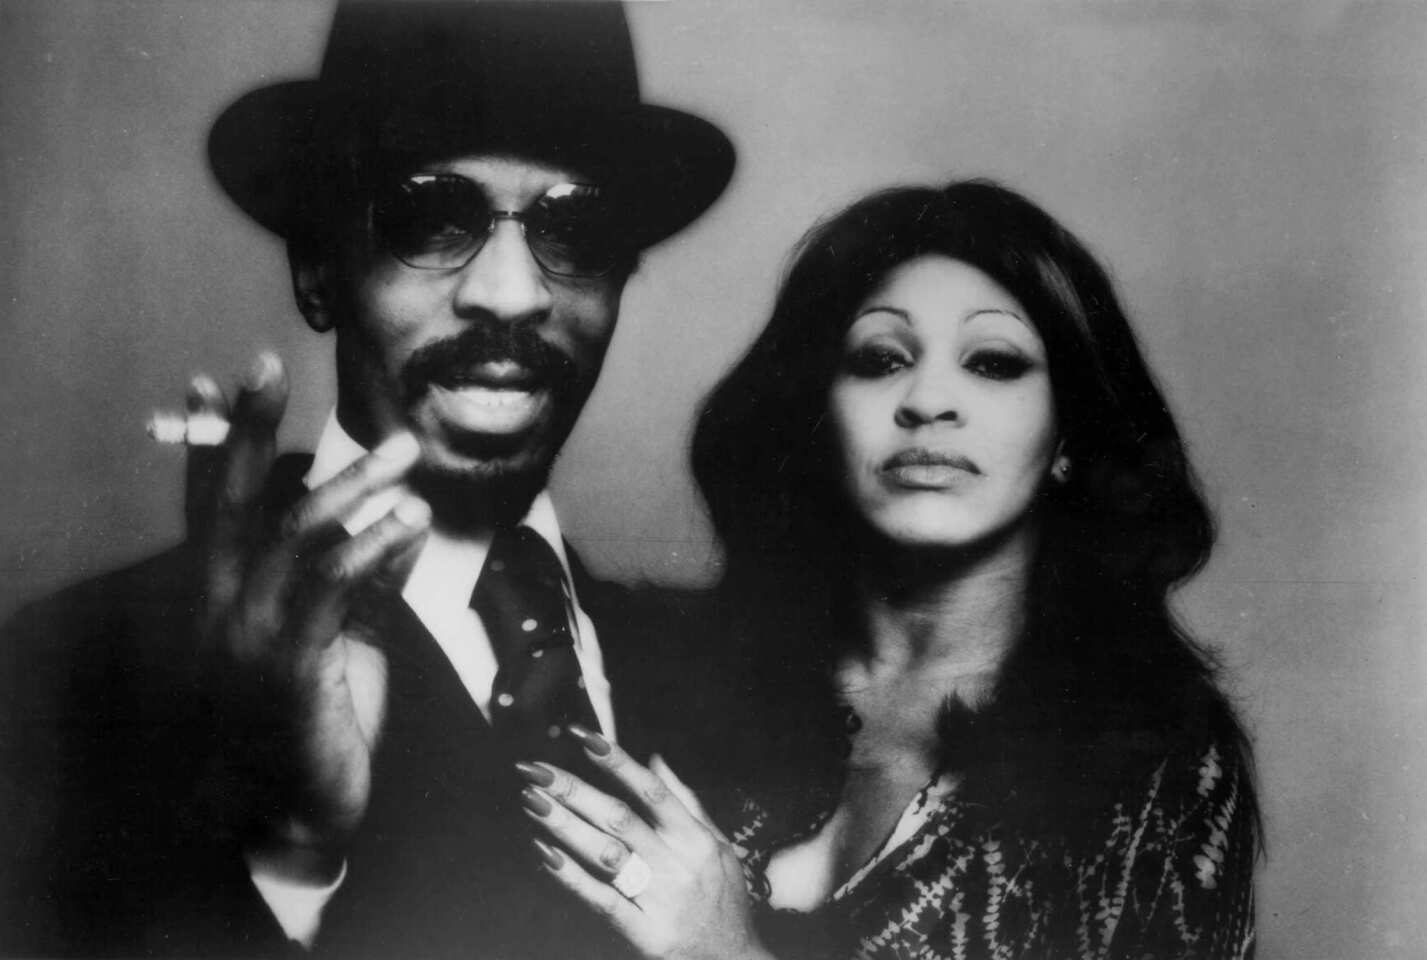 """In 1974, husband-and-wife singing duo Ike and Tina Turner got into a vicious spat before a concert in Dallas. Ike allegedly started the fight by slapping the back of her head, according to Tina's memoir. When the two emerged from a limousine, they each were severely bloodied and bruised with Tina's eyes almost sealed shut and Ike's nose bloodied. Tina described it as the one time she fought back against her husband. """"The problem is that there are two sides to every story and they only printed the bad side,"""" Ike told The Times in 1991 on the day he was released after 18 months in prison for probation and drug-related violations. """"I regret that I've screwed up my life, but I'm not ashamed of nothing I did."""" """"I took everything God gave me for granted: Tina, my family, my career,"""" Ike said in a later interview. """"When me and Tina broke up, man, I panicked. I got so insecure. I thought the public would reject me without her. I knew I was in real bad shape, but I couldn't stop."""" Tina filed for divorce in 1974 and the 14-year marriage officially ended in 1978."""